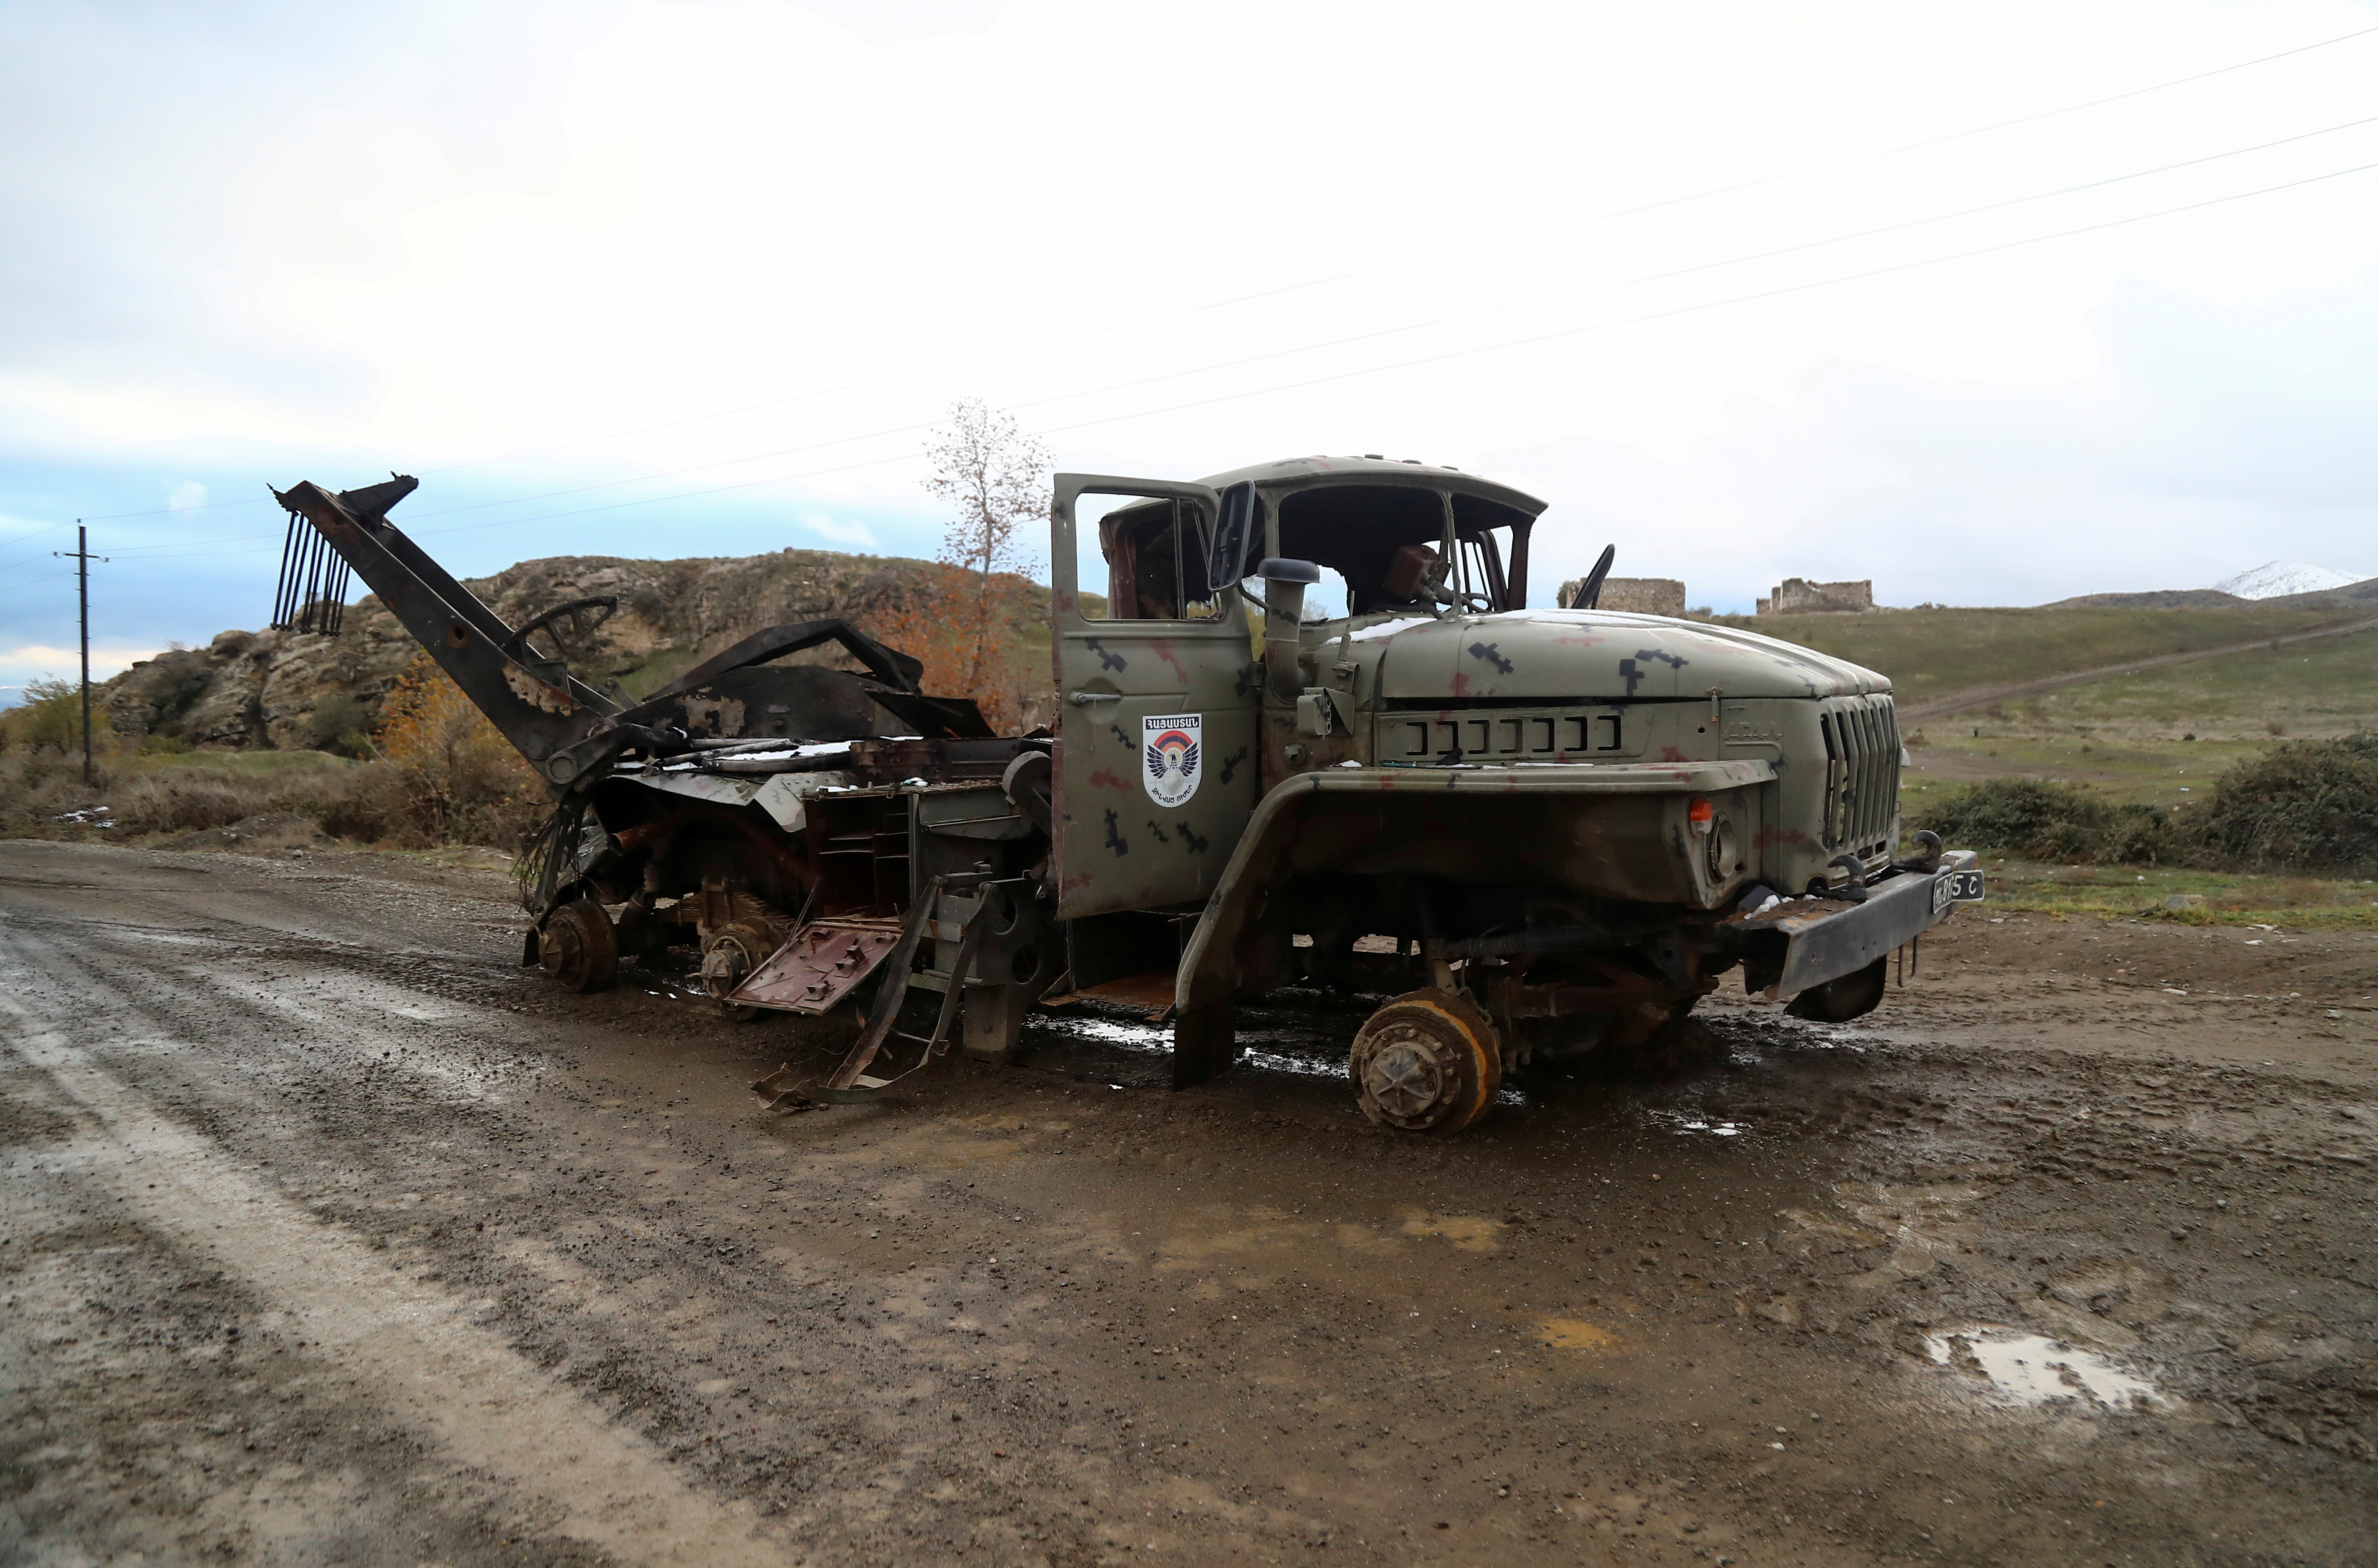 A view shows a damaged truck belonging to ethnic Armenian forces in an area that came under the control of Azerbaijan's troops following a military conflict over Nagorno-Karabakh, in Jabrayil District, December 7, 2020. REUTERS/Aziz Karimov